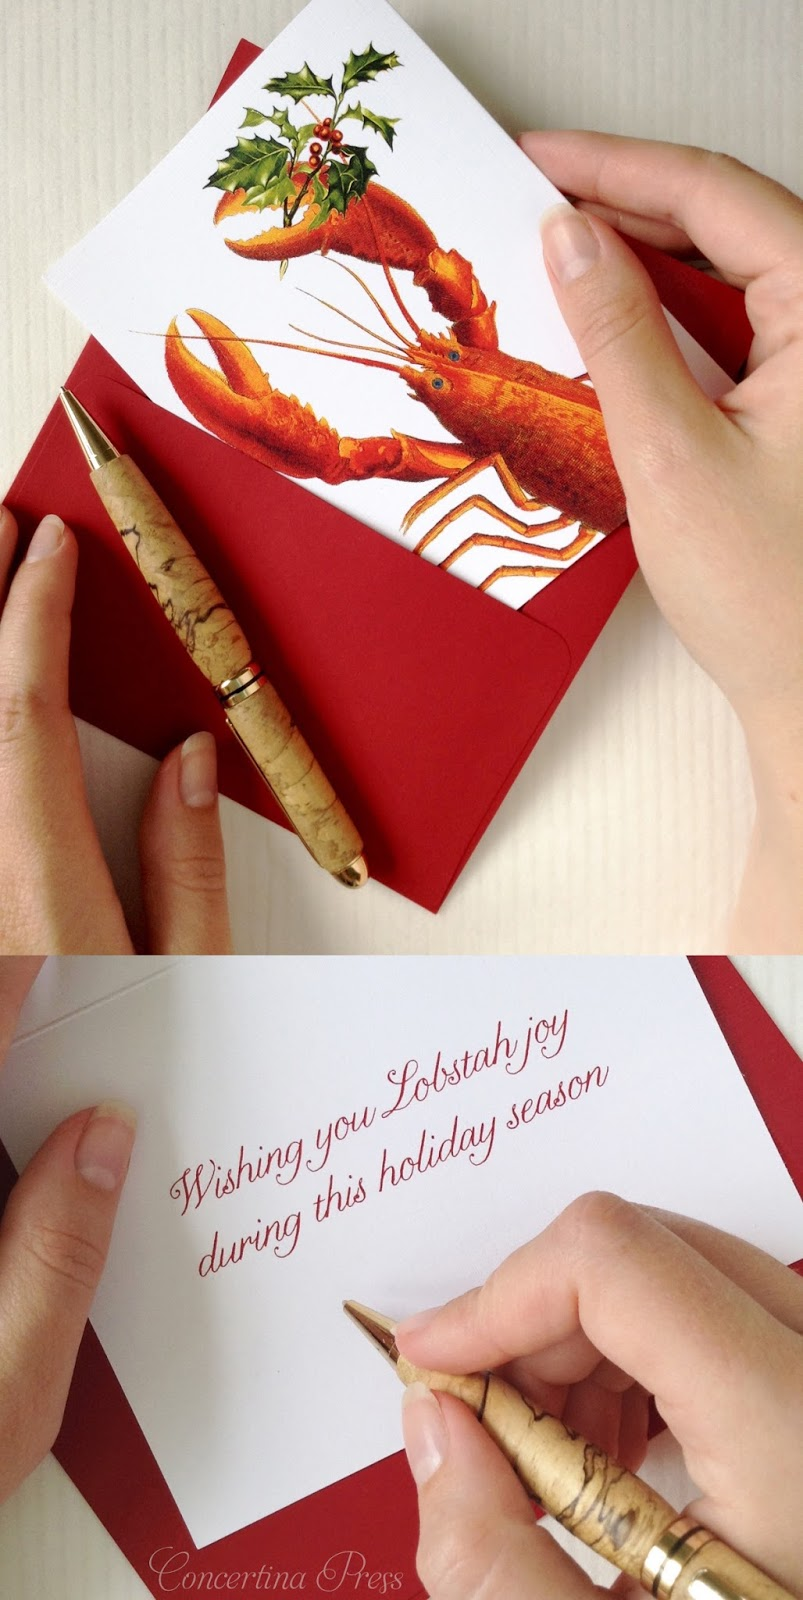 Lobster Christmas Cards from Concertina Press